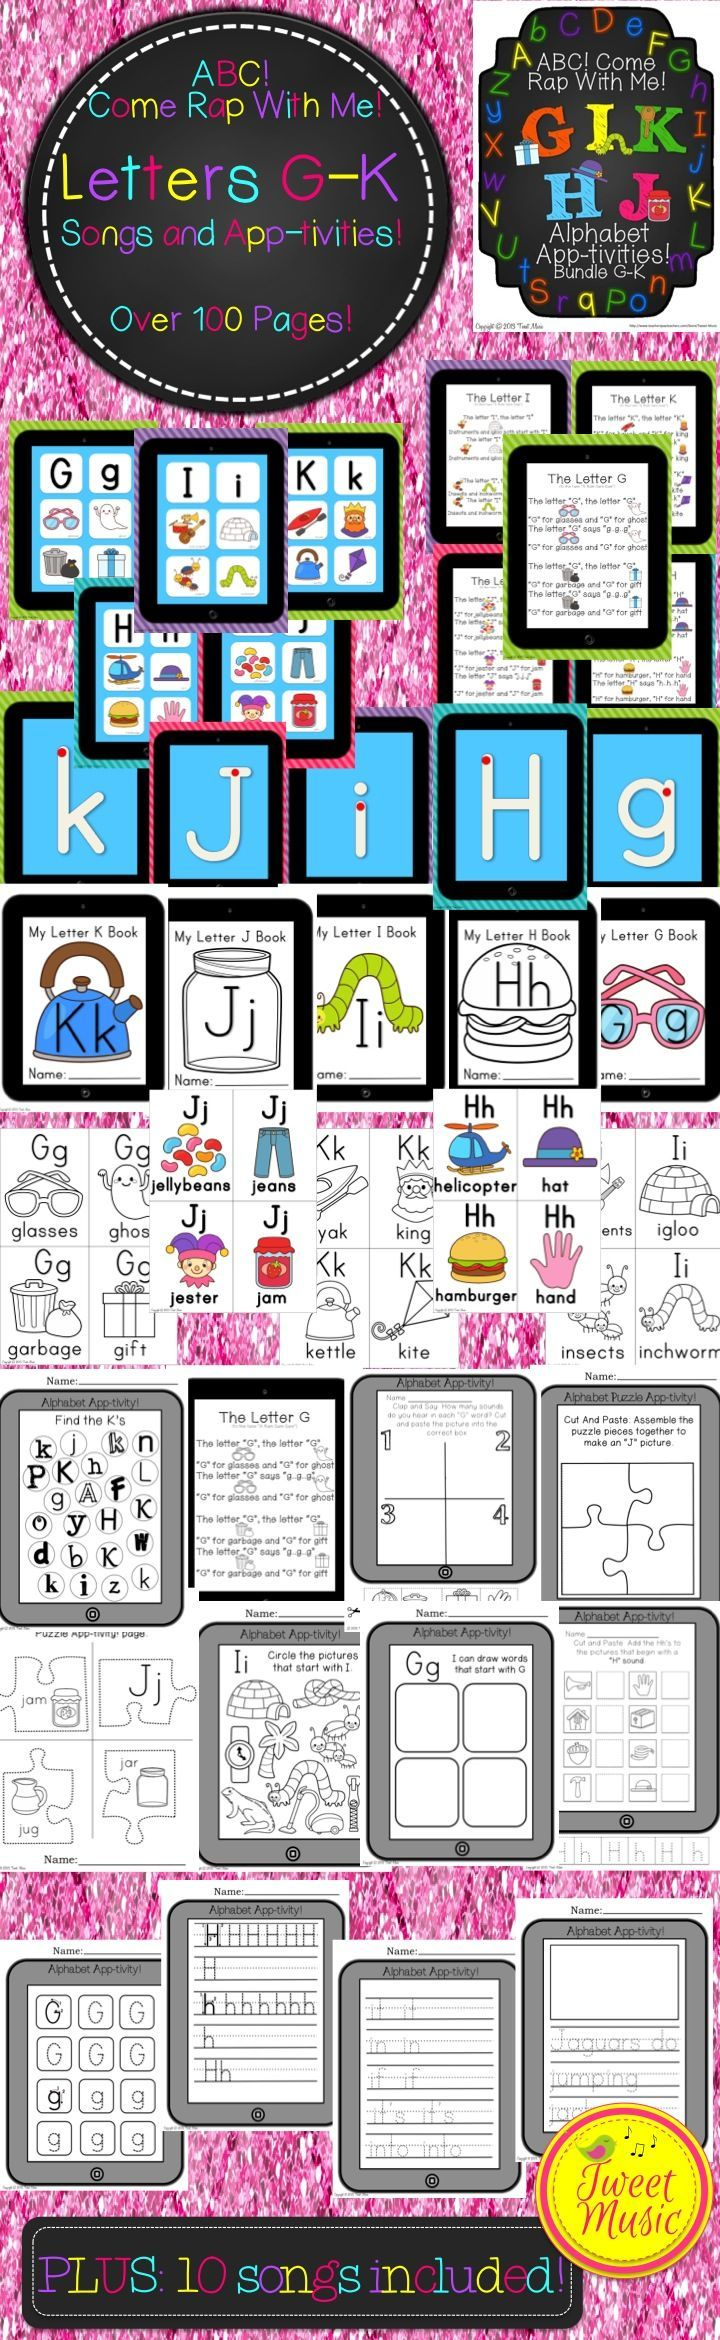 """110 PAGES OF PRINTABLES and POSTERS, as well as 10 LETTER SONGS IN MP3' FORMAT. Save more than 30% off and buy """"ABC! Come Rap With Me!"""" in bundle packs. Over 100 pages of common core aligned Letter G, H, I, J and K printables (or app-tivities as I have affectionately named them for their iPad theme) are included with purchase. Also included are 2 MP3's- an original """"Letter song"""" and """"Letter Rap"""""""